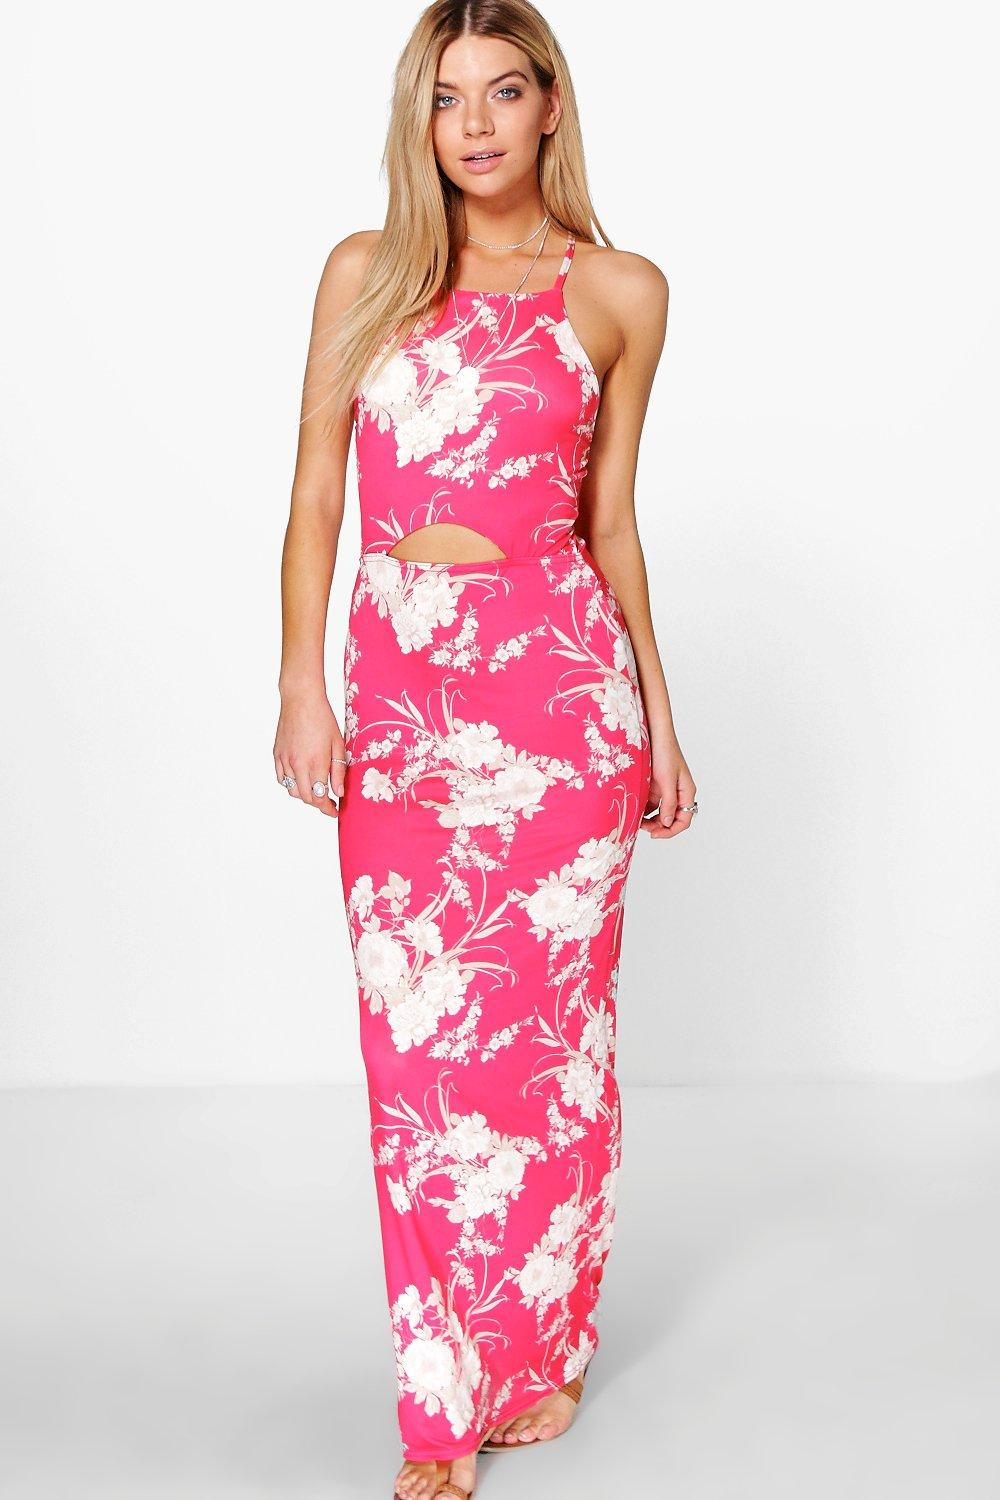 Trixie Strappy Oriental Cut Out Maxi Dress